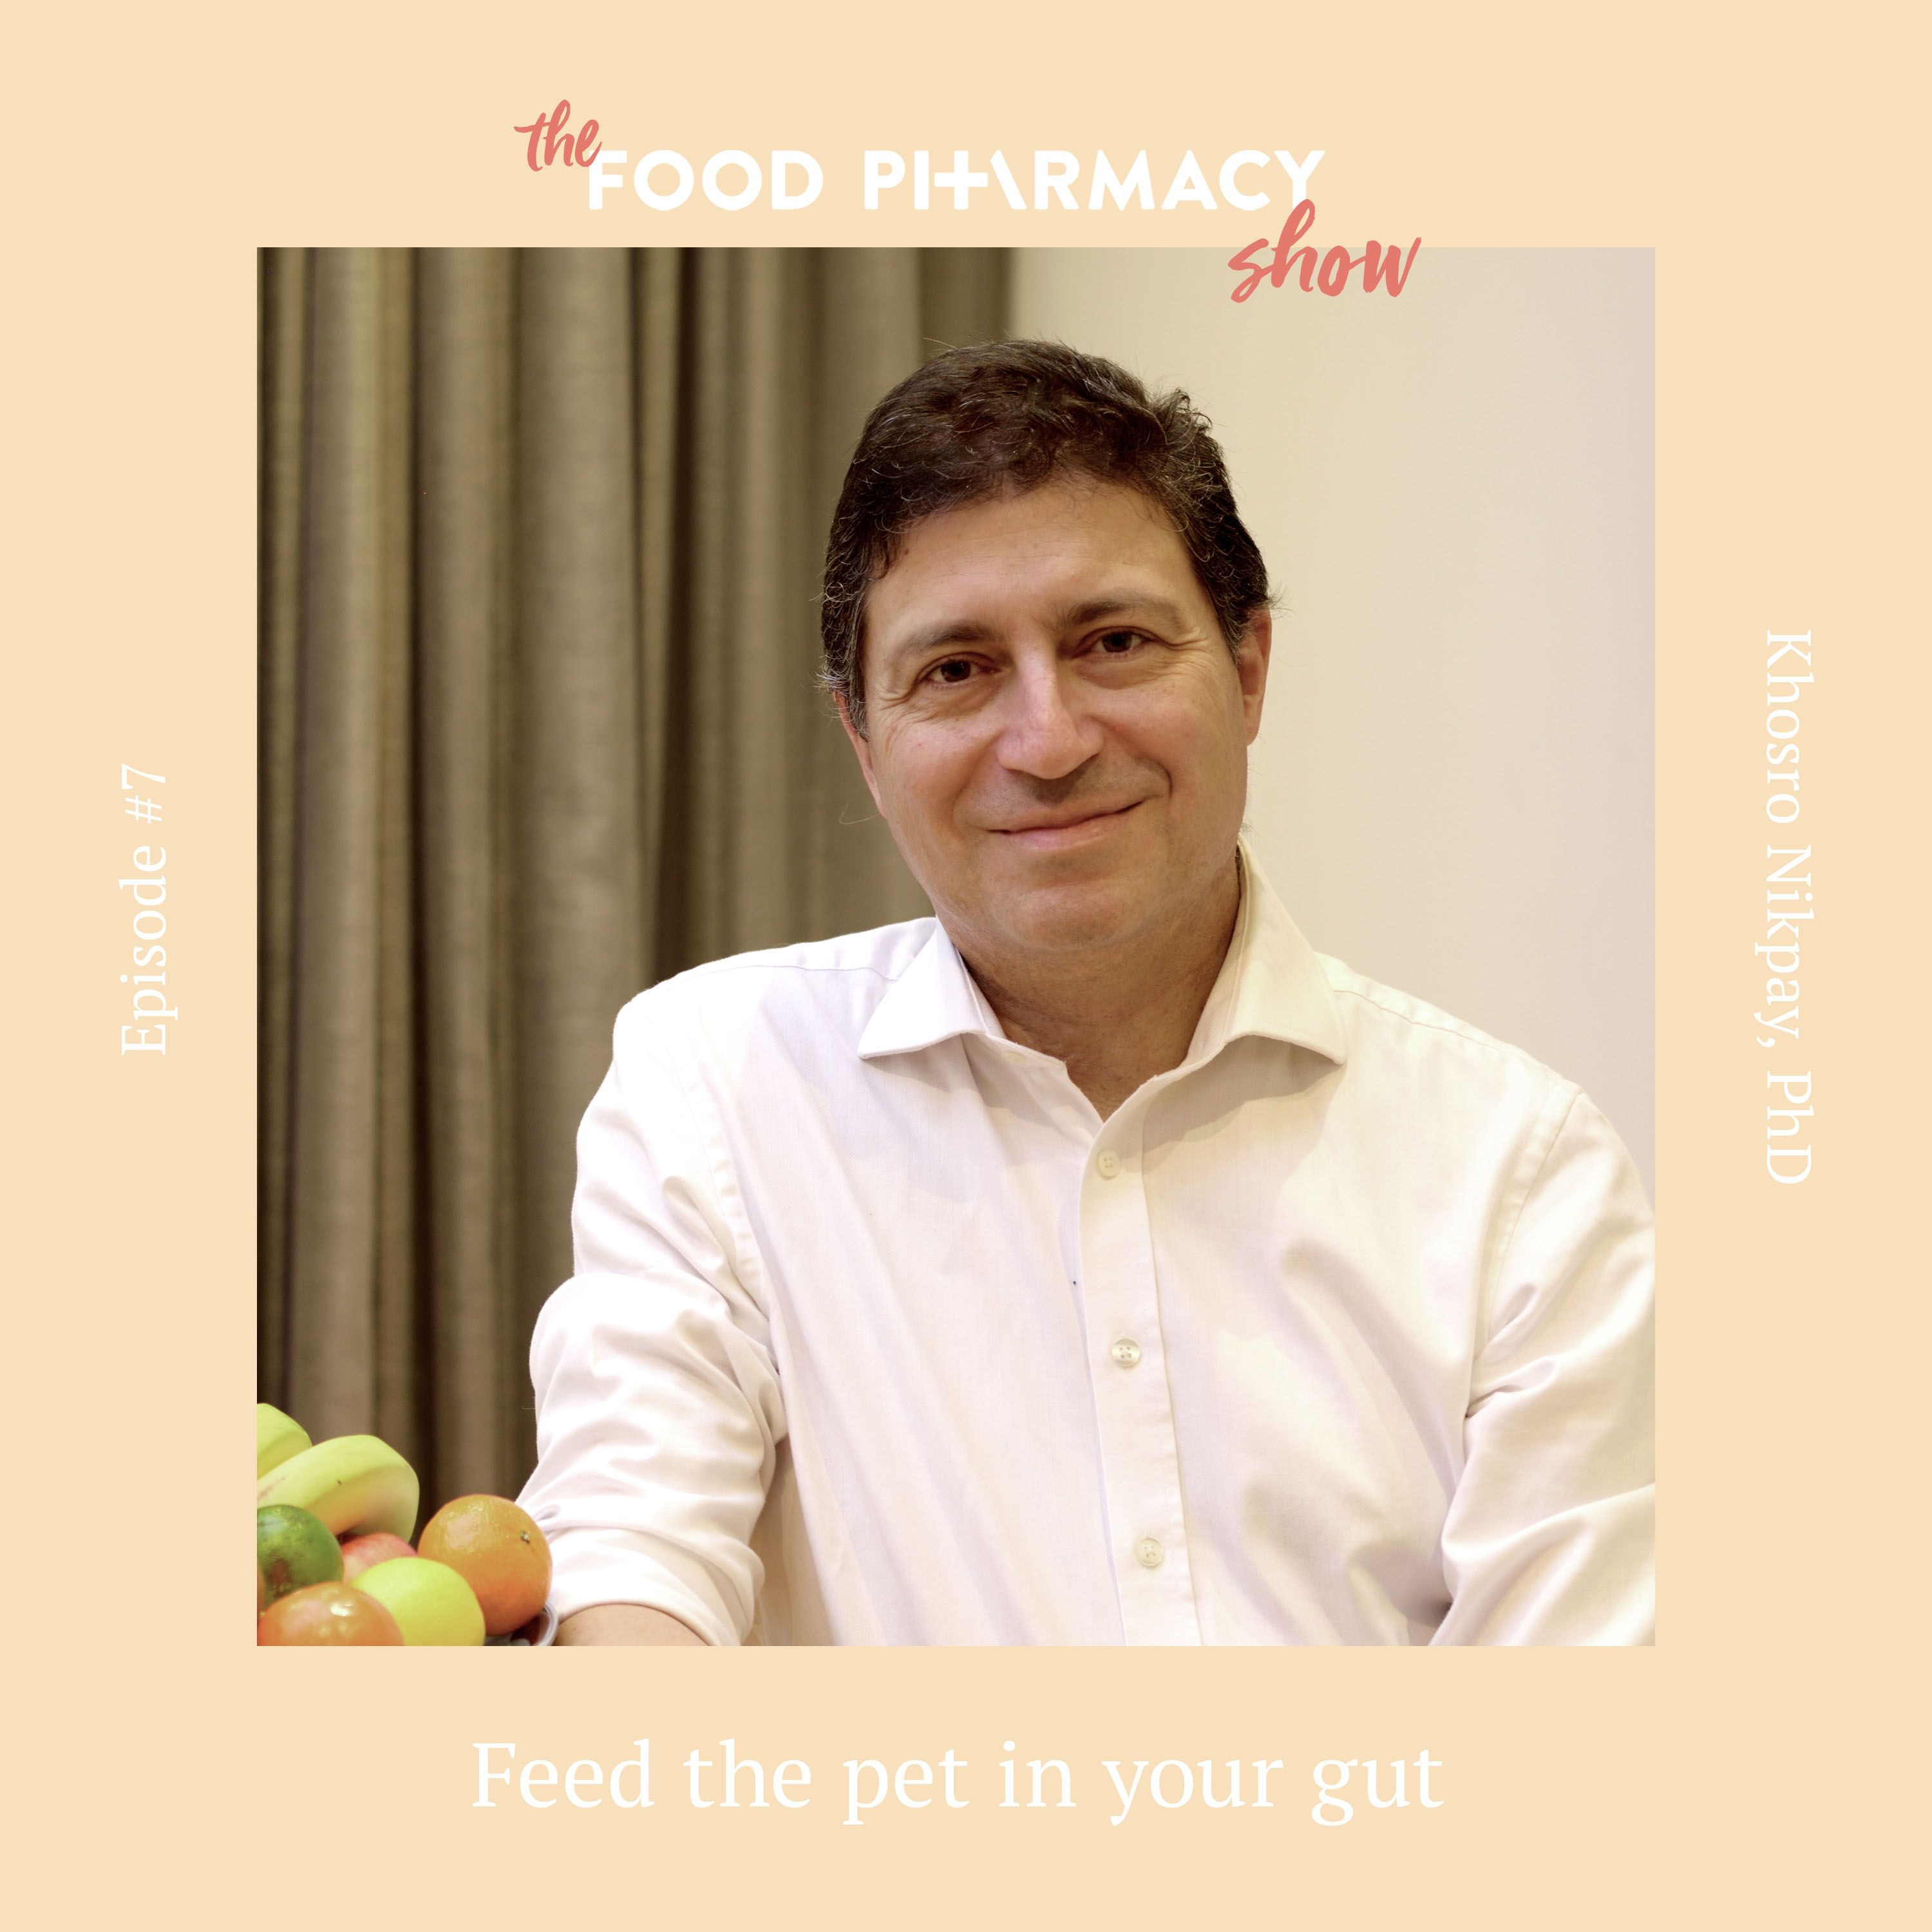 7. Khosro Nikpay PhD - feed the pet in your gut